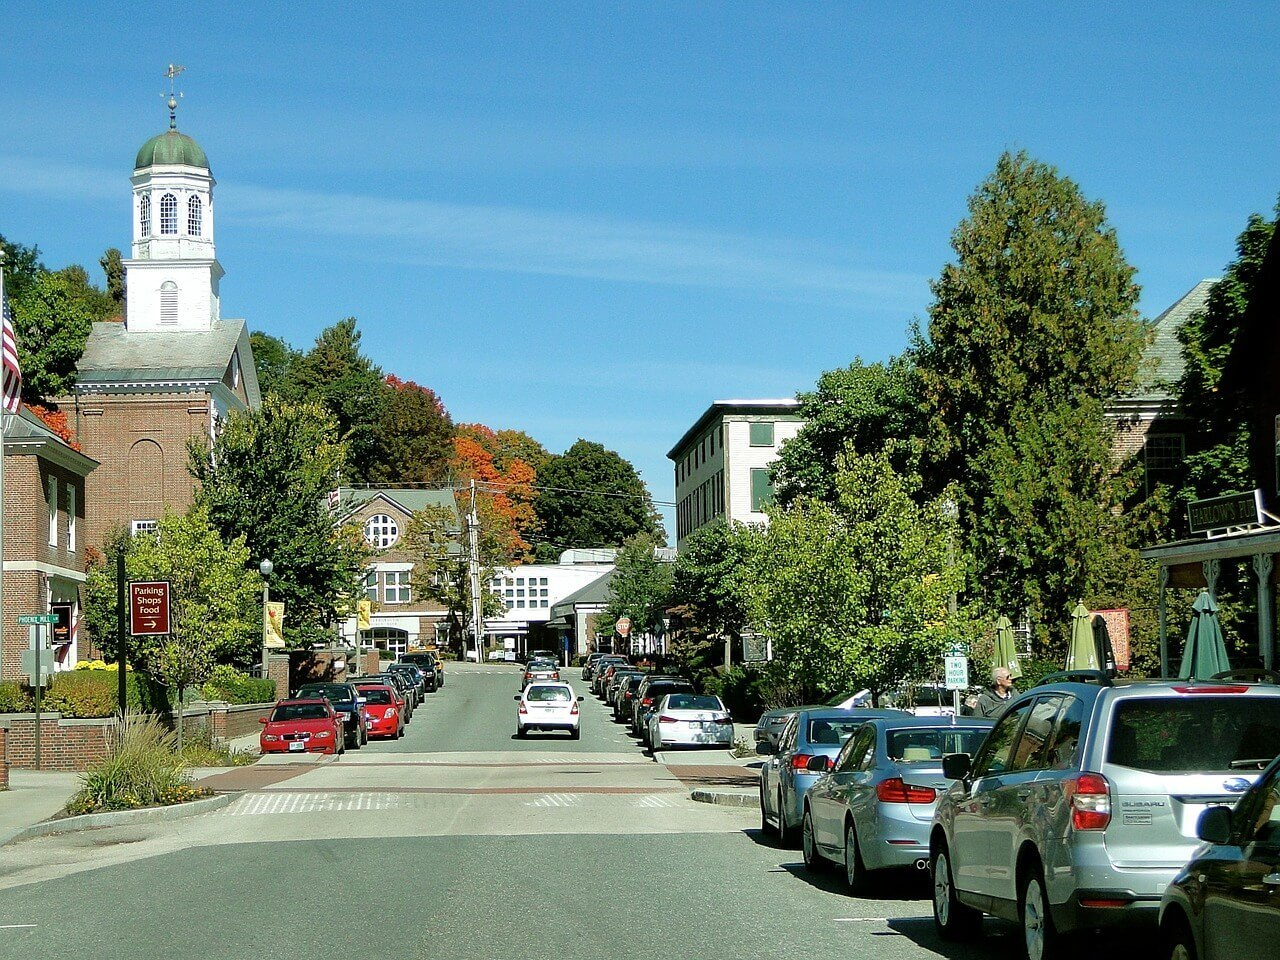 Main Street in New Hampshire